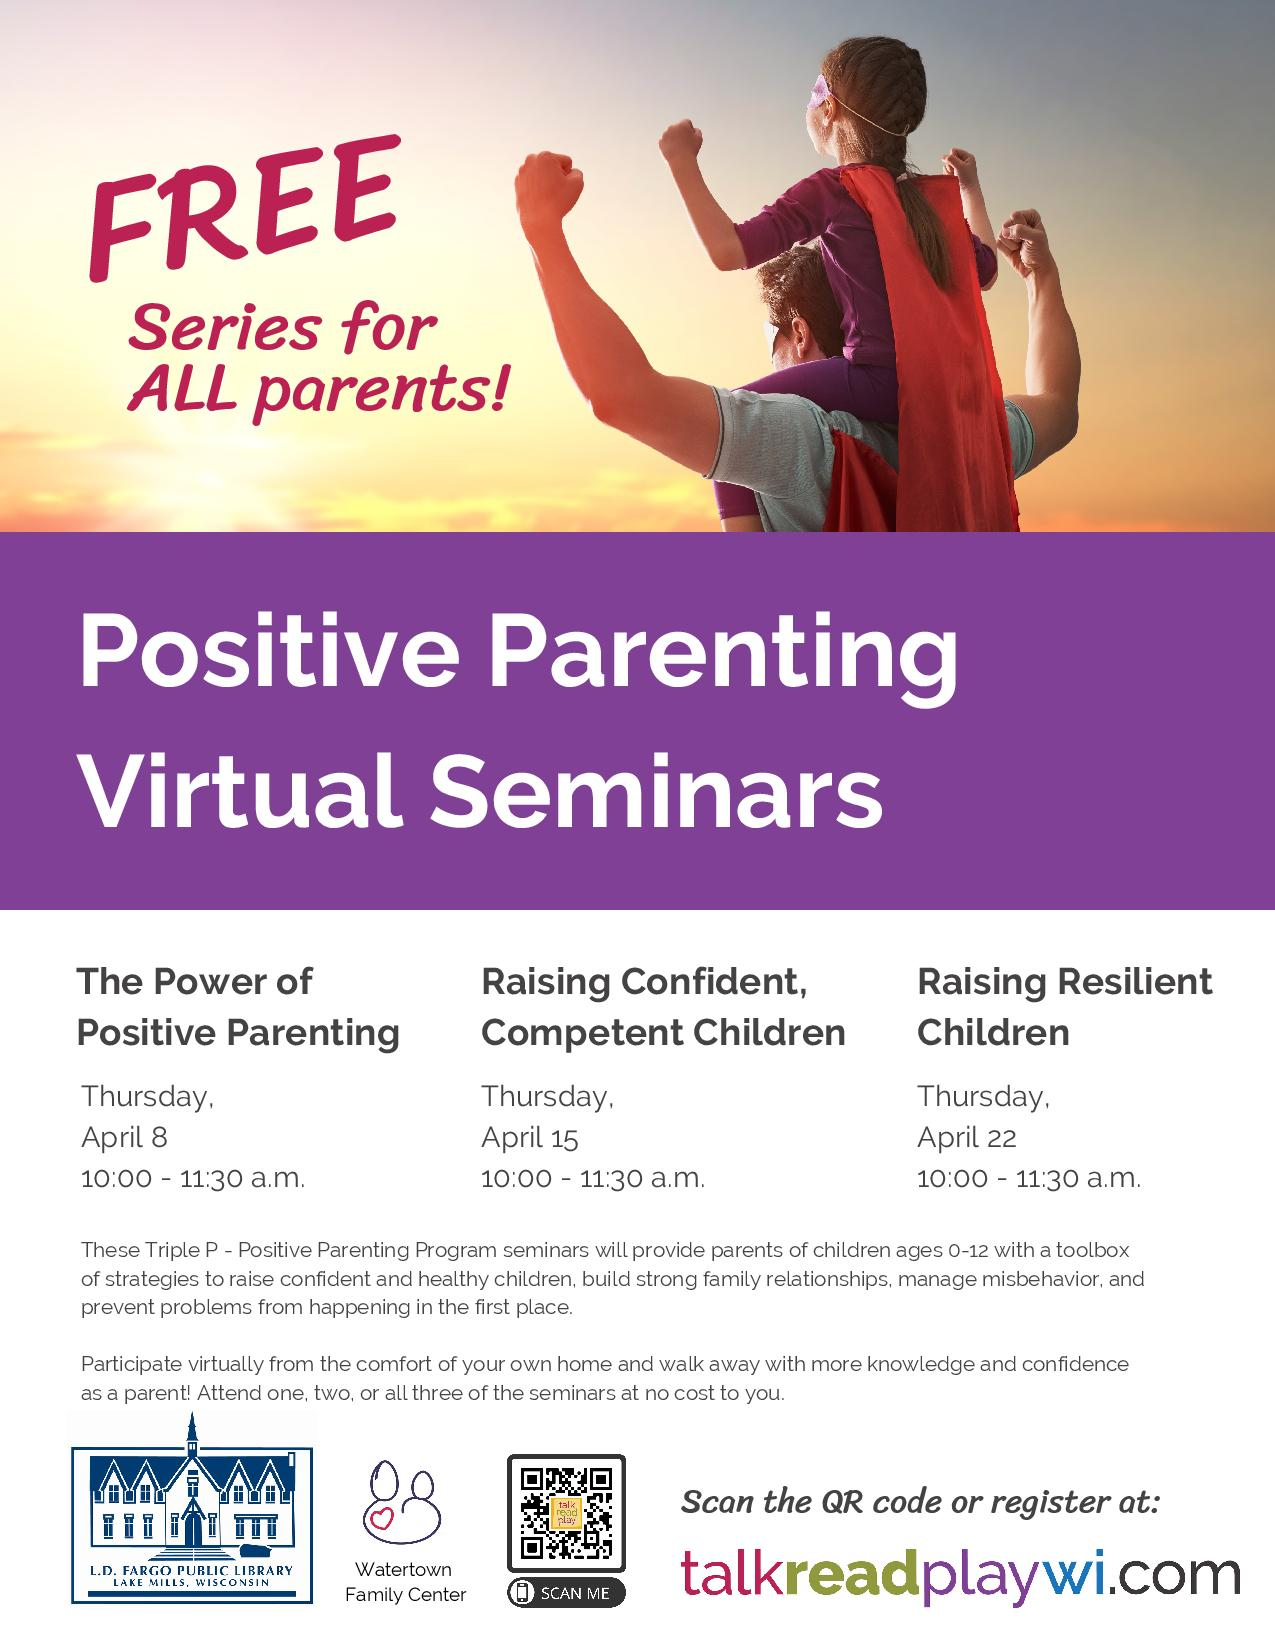 Positive Parenting Virtual Seminars.  April 9, April 15, April 22, 10:00-11:30 AM.  For parents of kids ages 0-12.  Learn a toolbox of strategies to raise confident and healthy children, build strong family relationships, manage misbehavior, and prevent problems from happening in the first place.